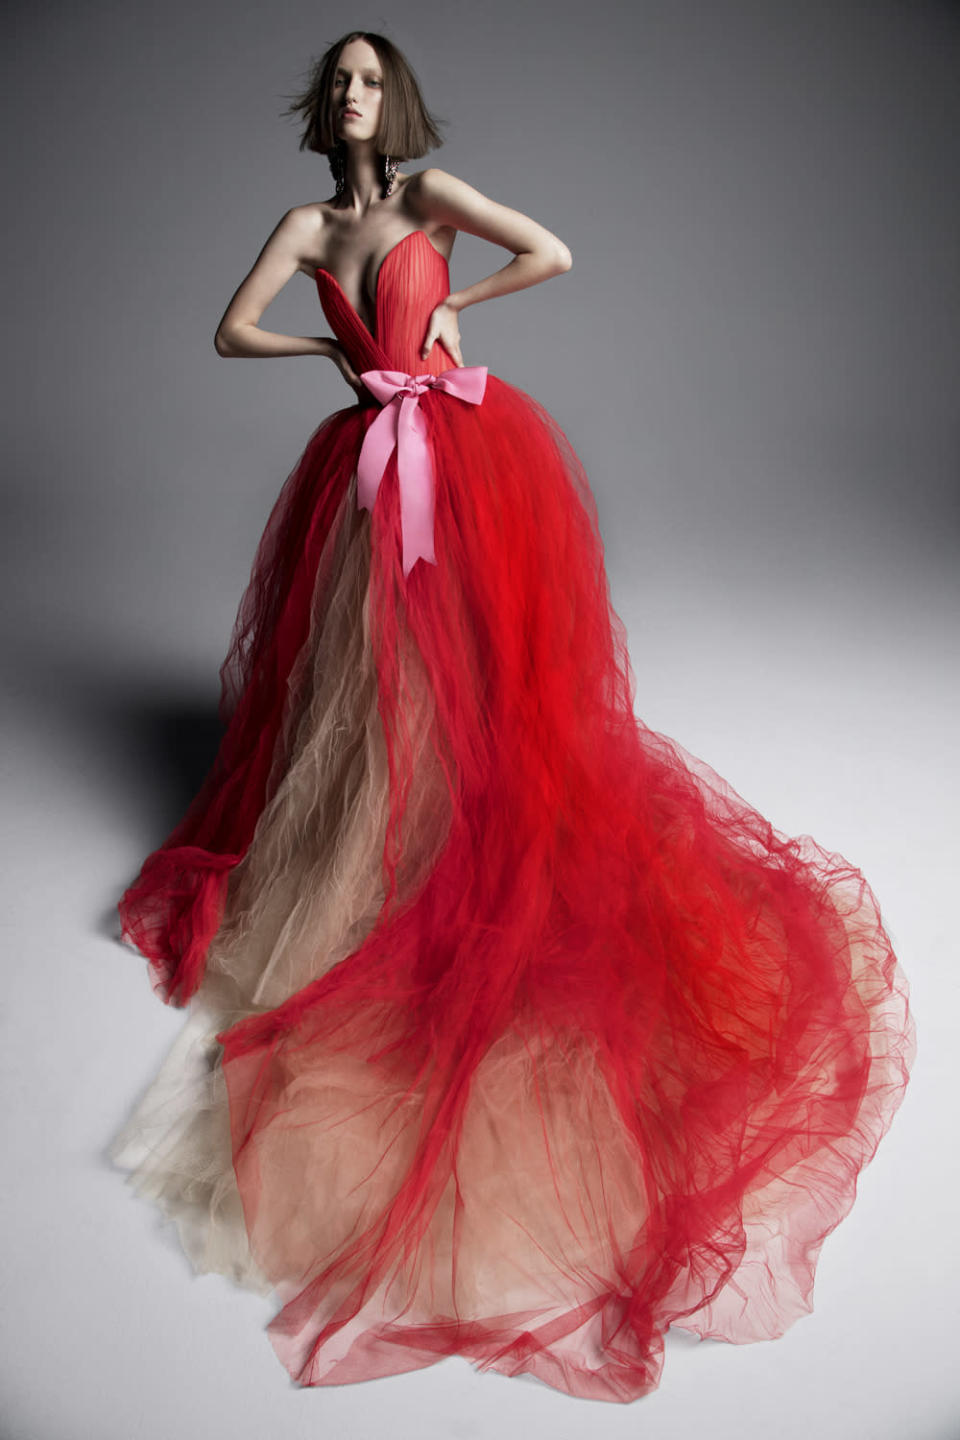 <p>Crimson strapless gown with pink bow. (Photo: Inez & Vinoodh) </p>